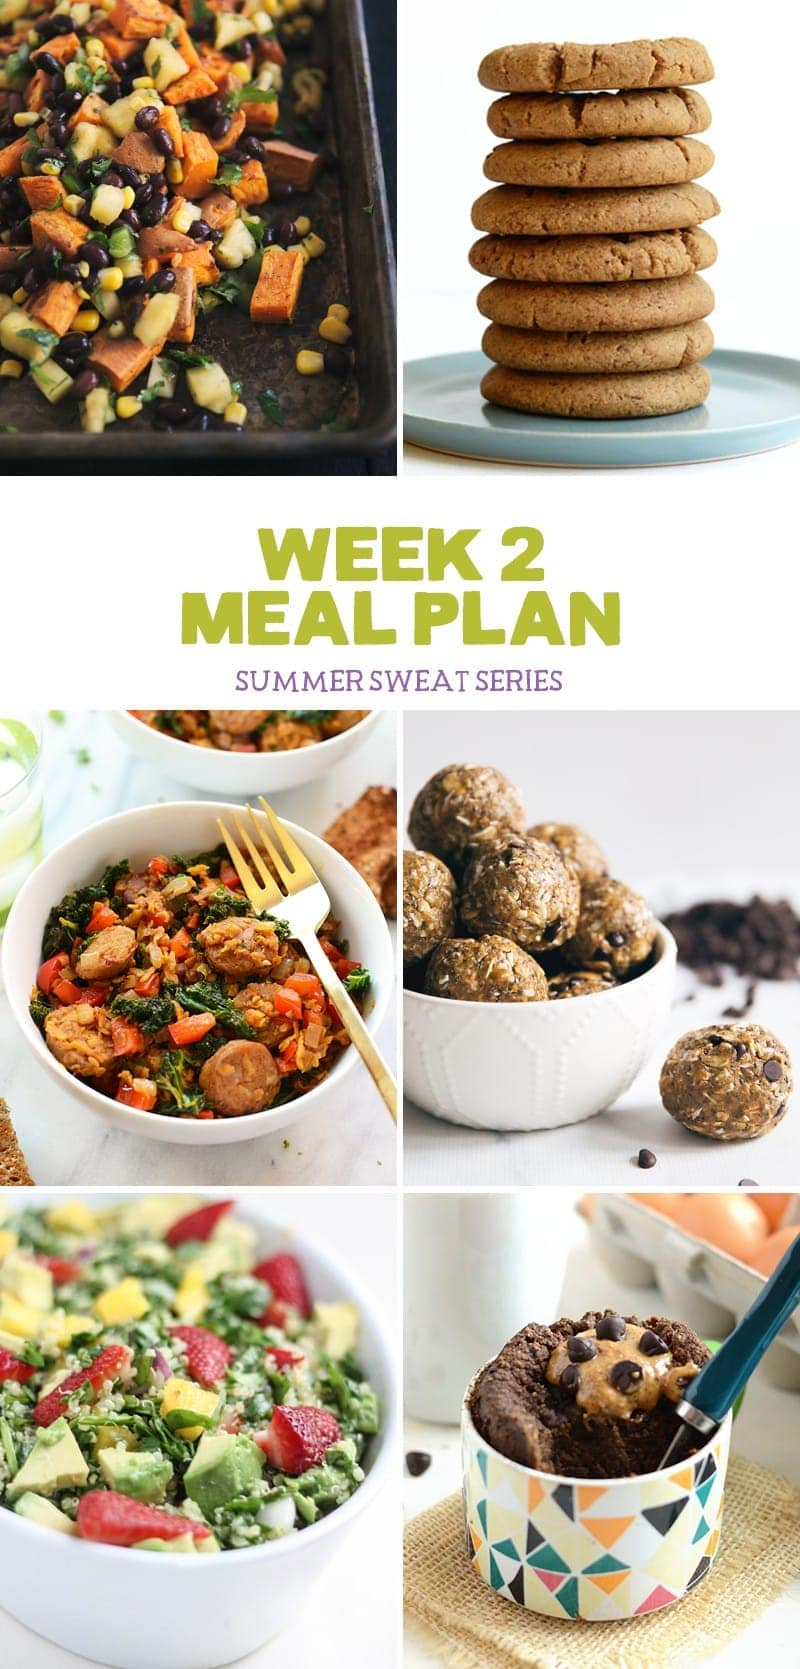 Check out the week 2 meal plan of The Summer Sweat Series hosted by Fit Foodie Finds and Ambitious Kitchen!